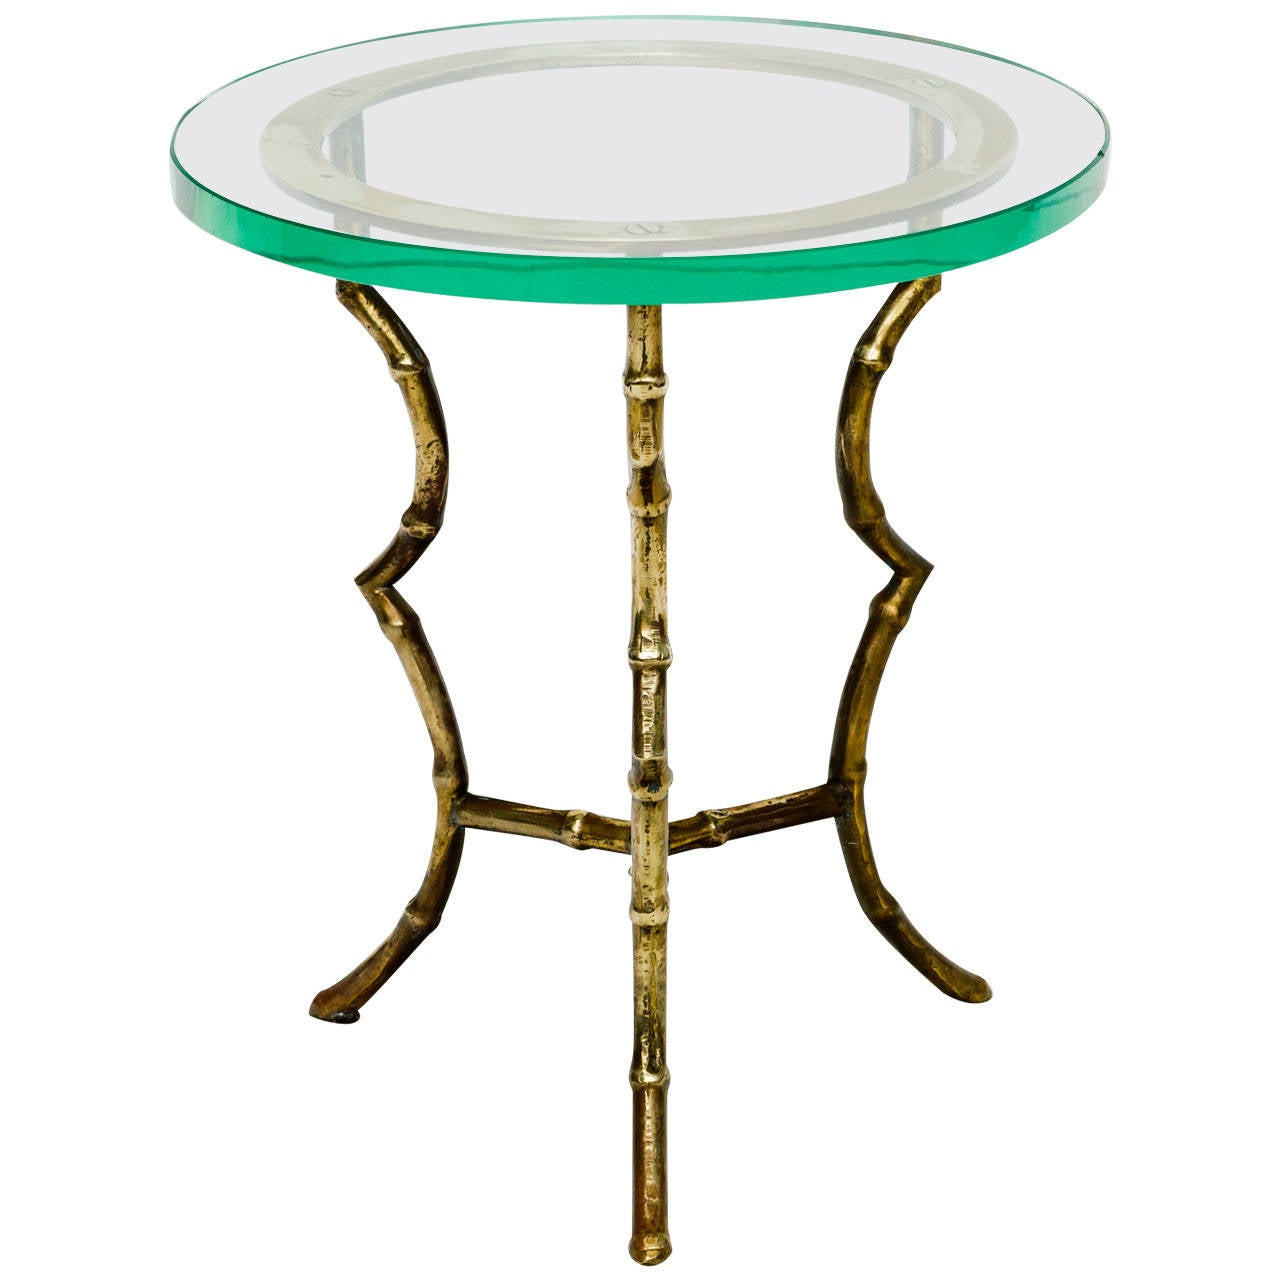 Italian brass faux bamboo side table for sale at 1stdibs for Bamboo side table